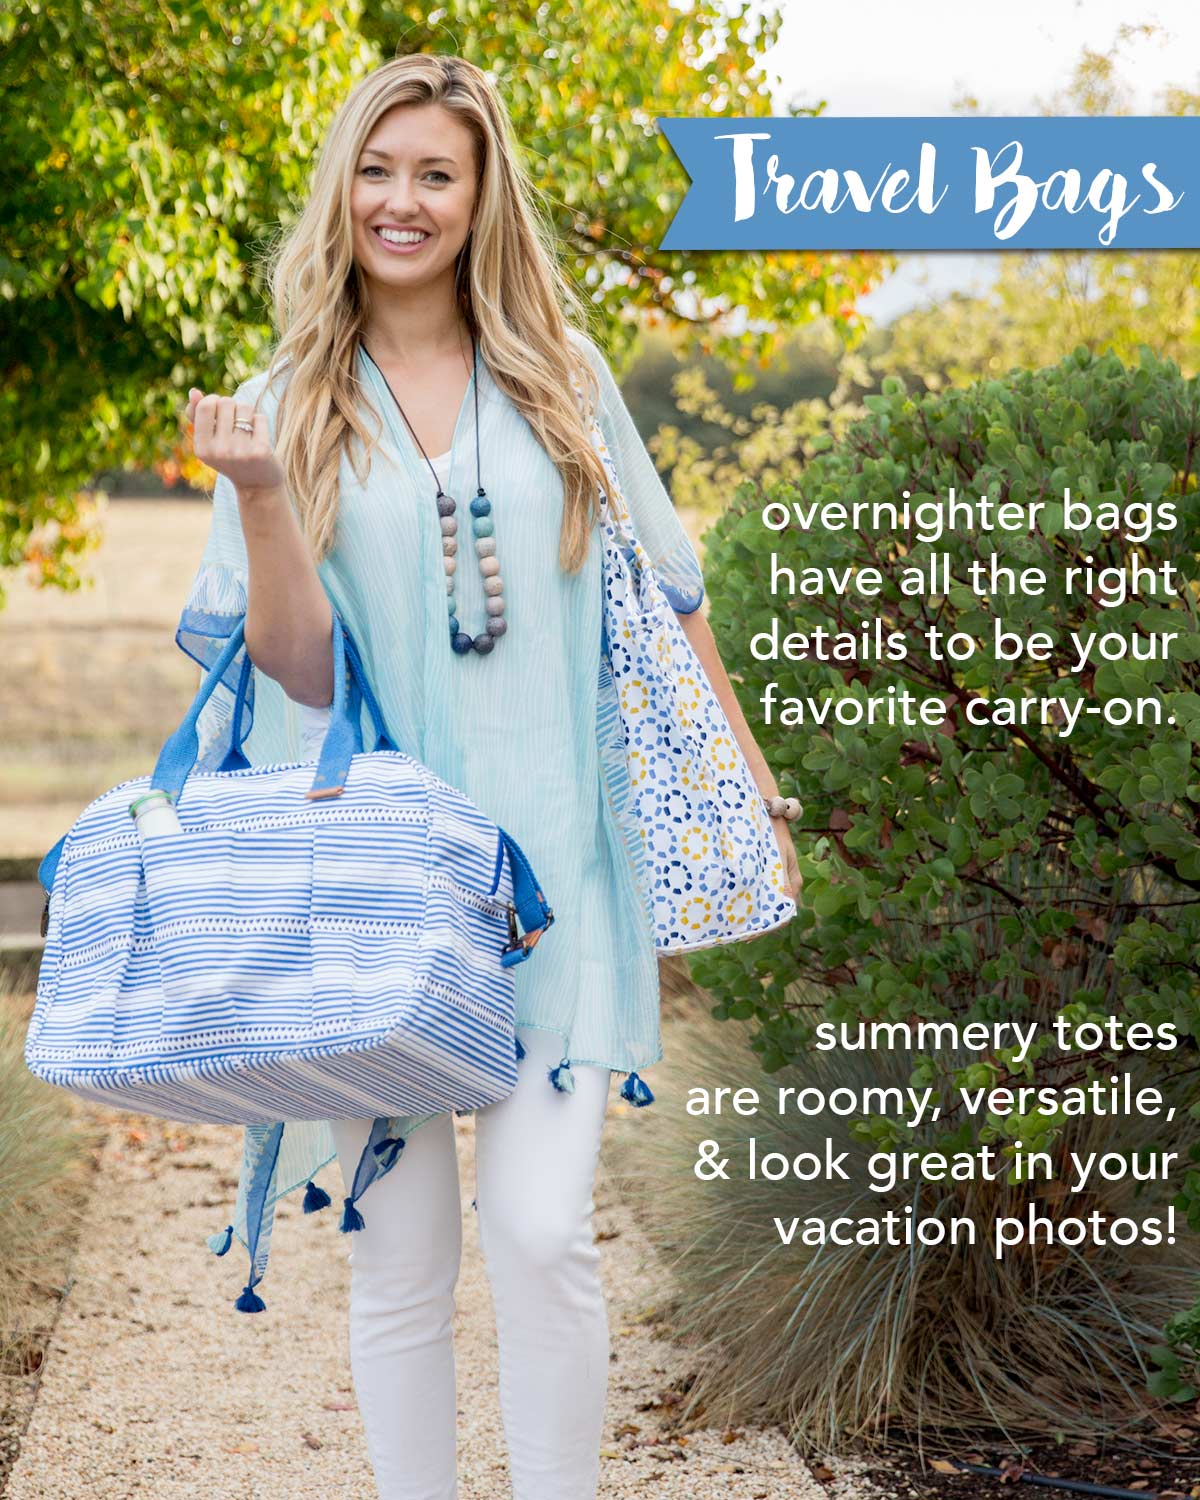 overnighter bags and summery totes perfect for travel